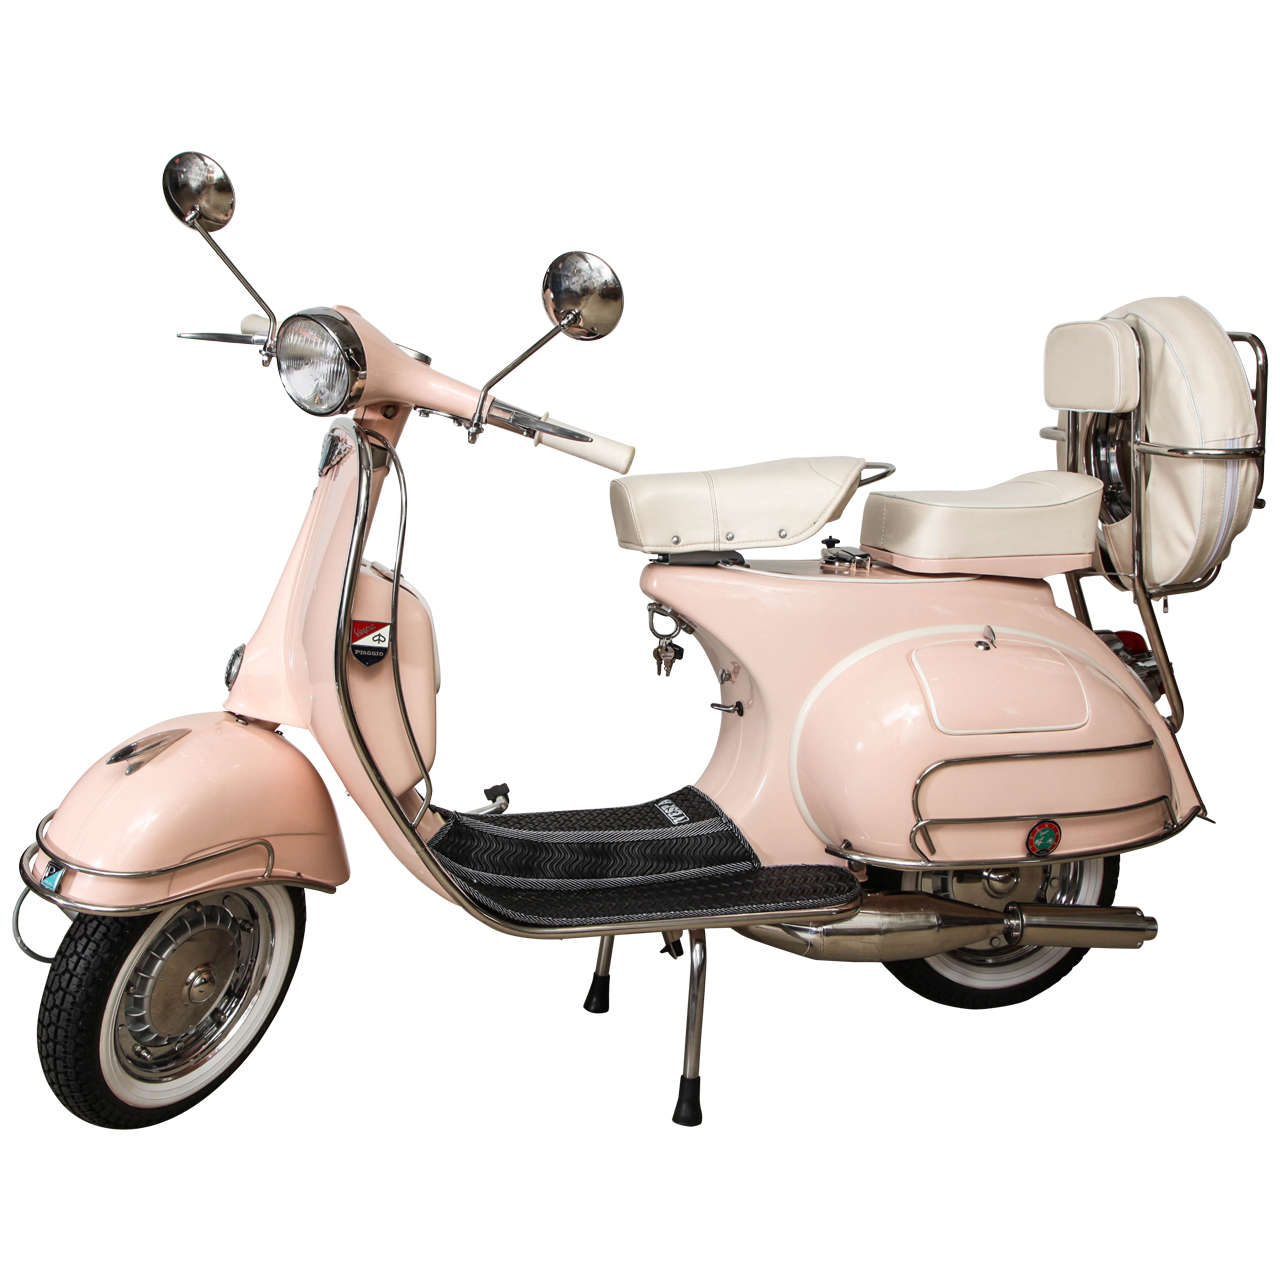 Fully Restored 1963 Pink With White Leather Vintage